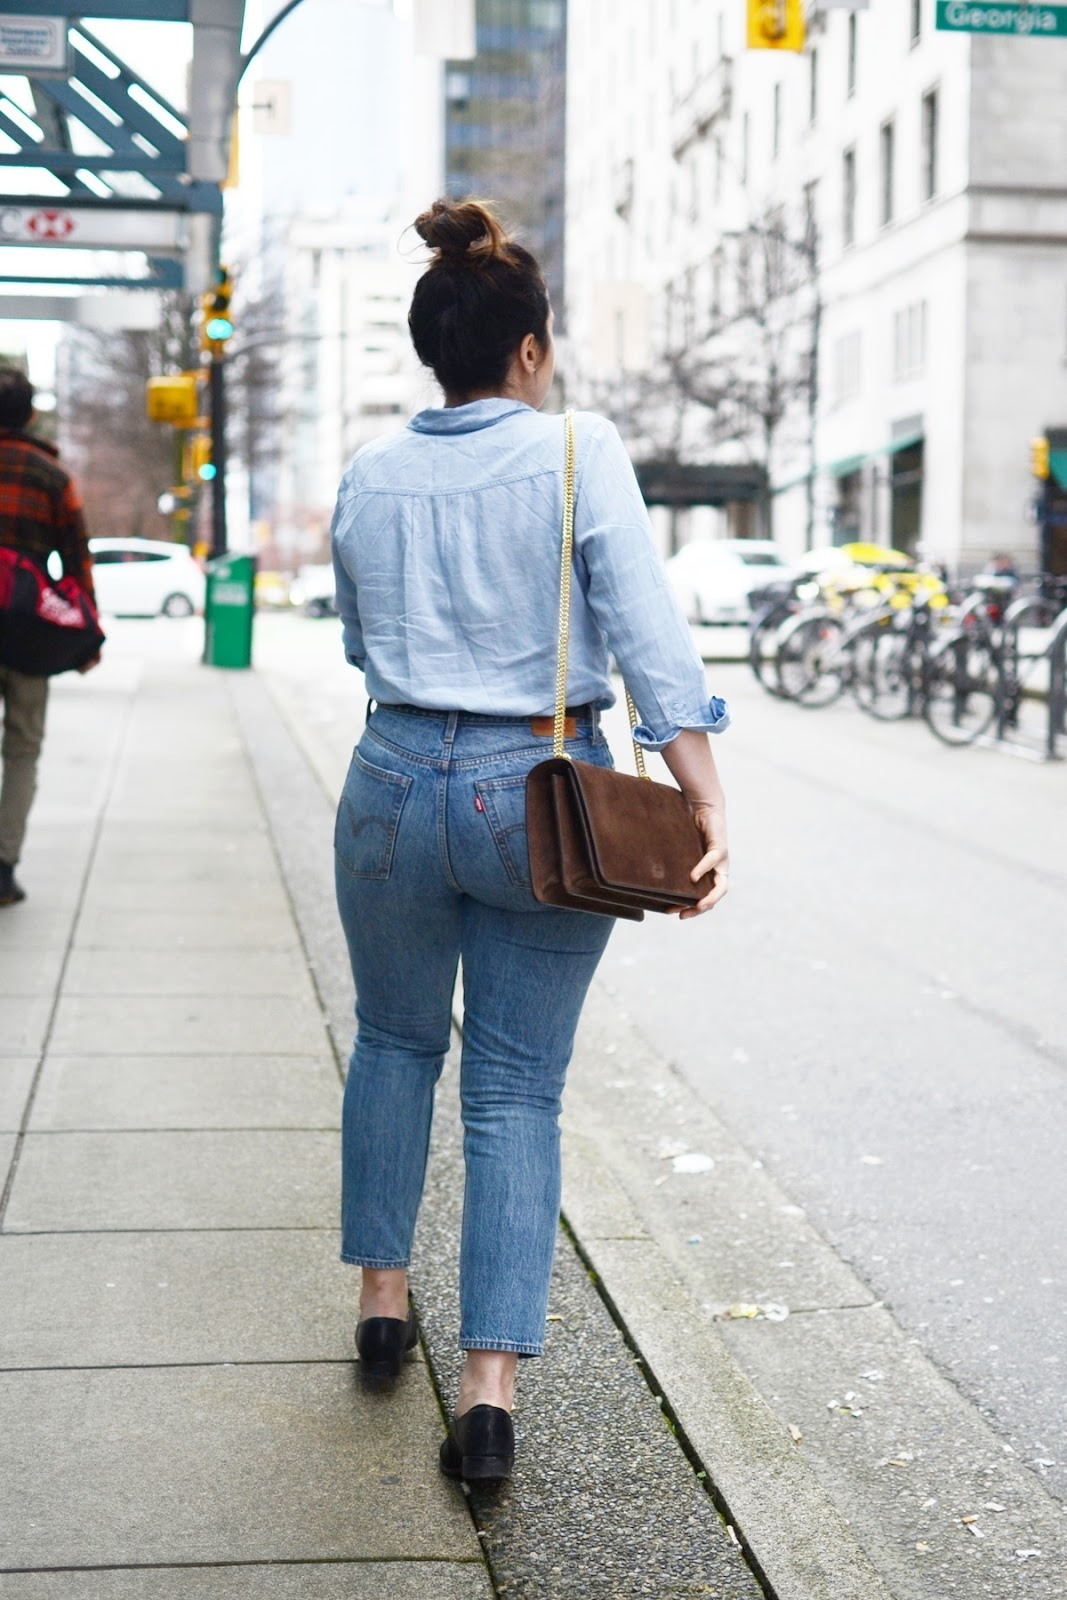 Denim outfit levis wedgie jeans AGNEEL sophie bag vancouver fashion blogger 4